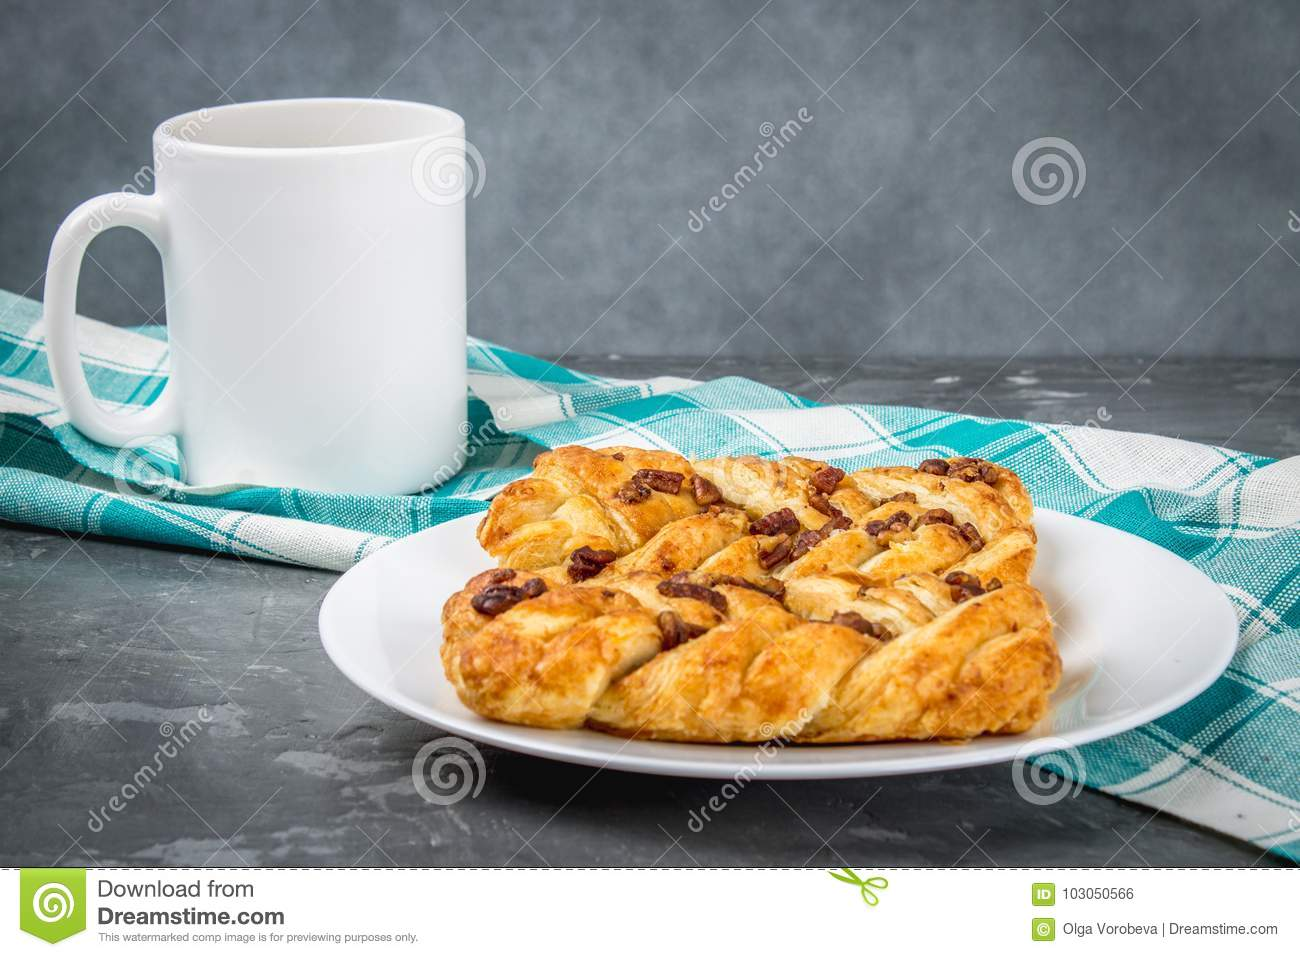 Danish pastry maple pecan with nuts and maple syrup.